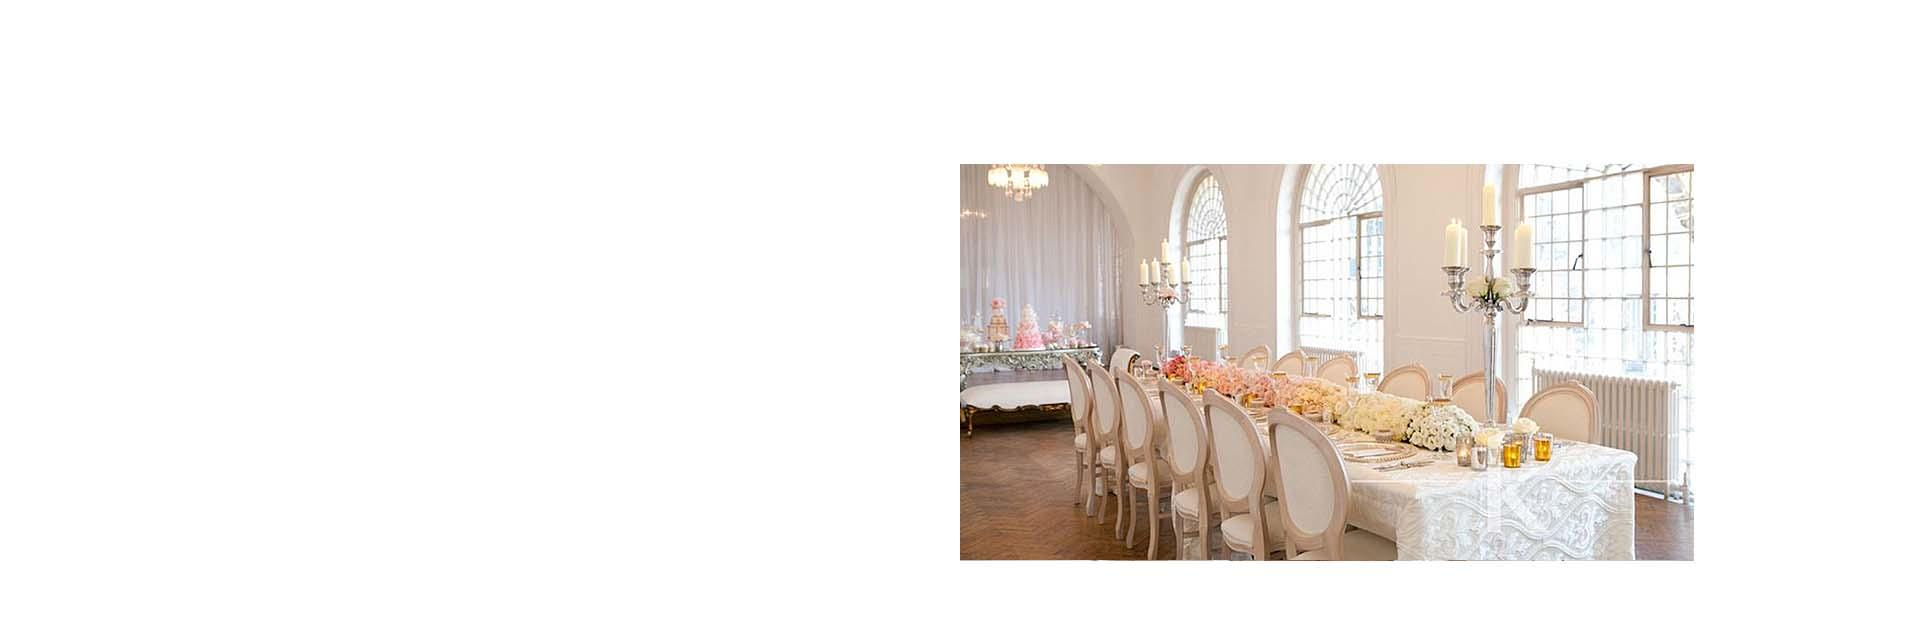 Featured London Wedding Venue: One Marylebone